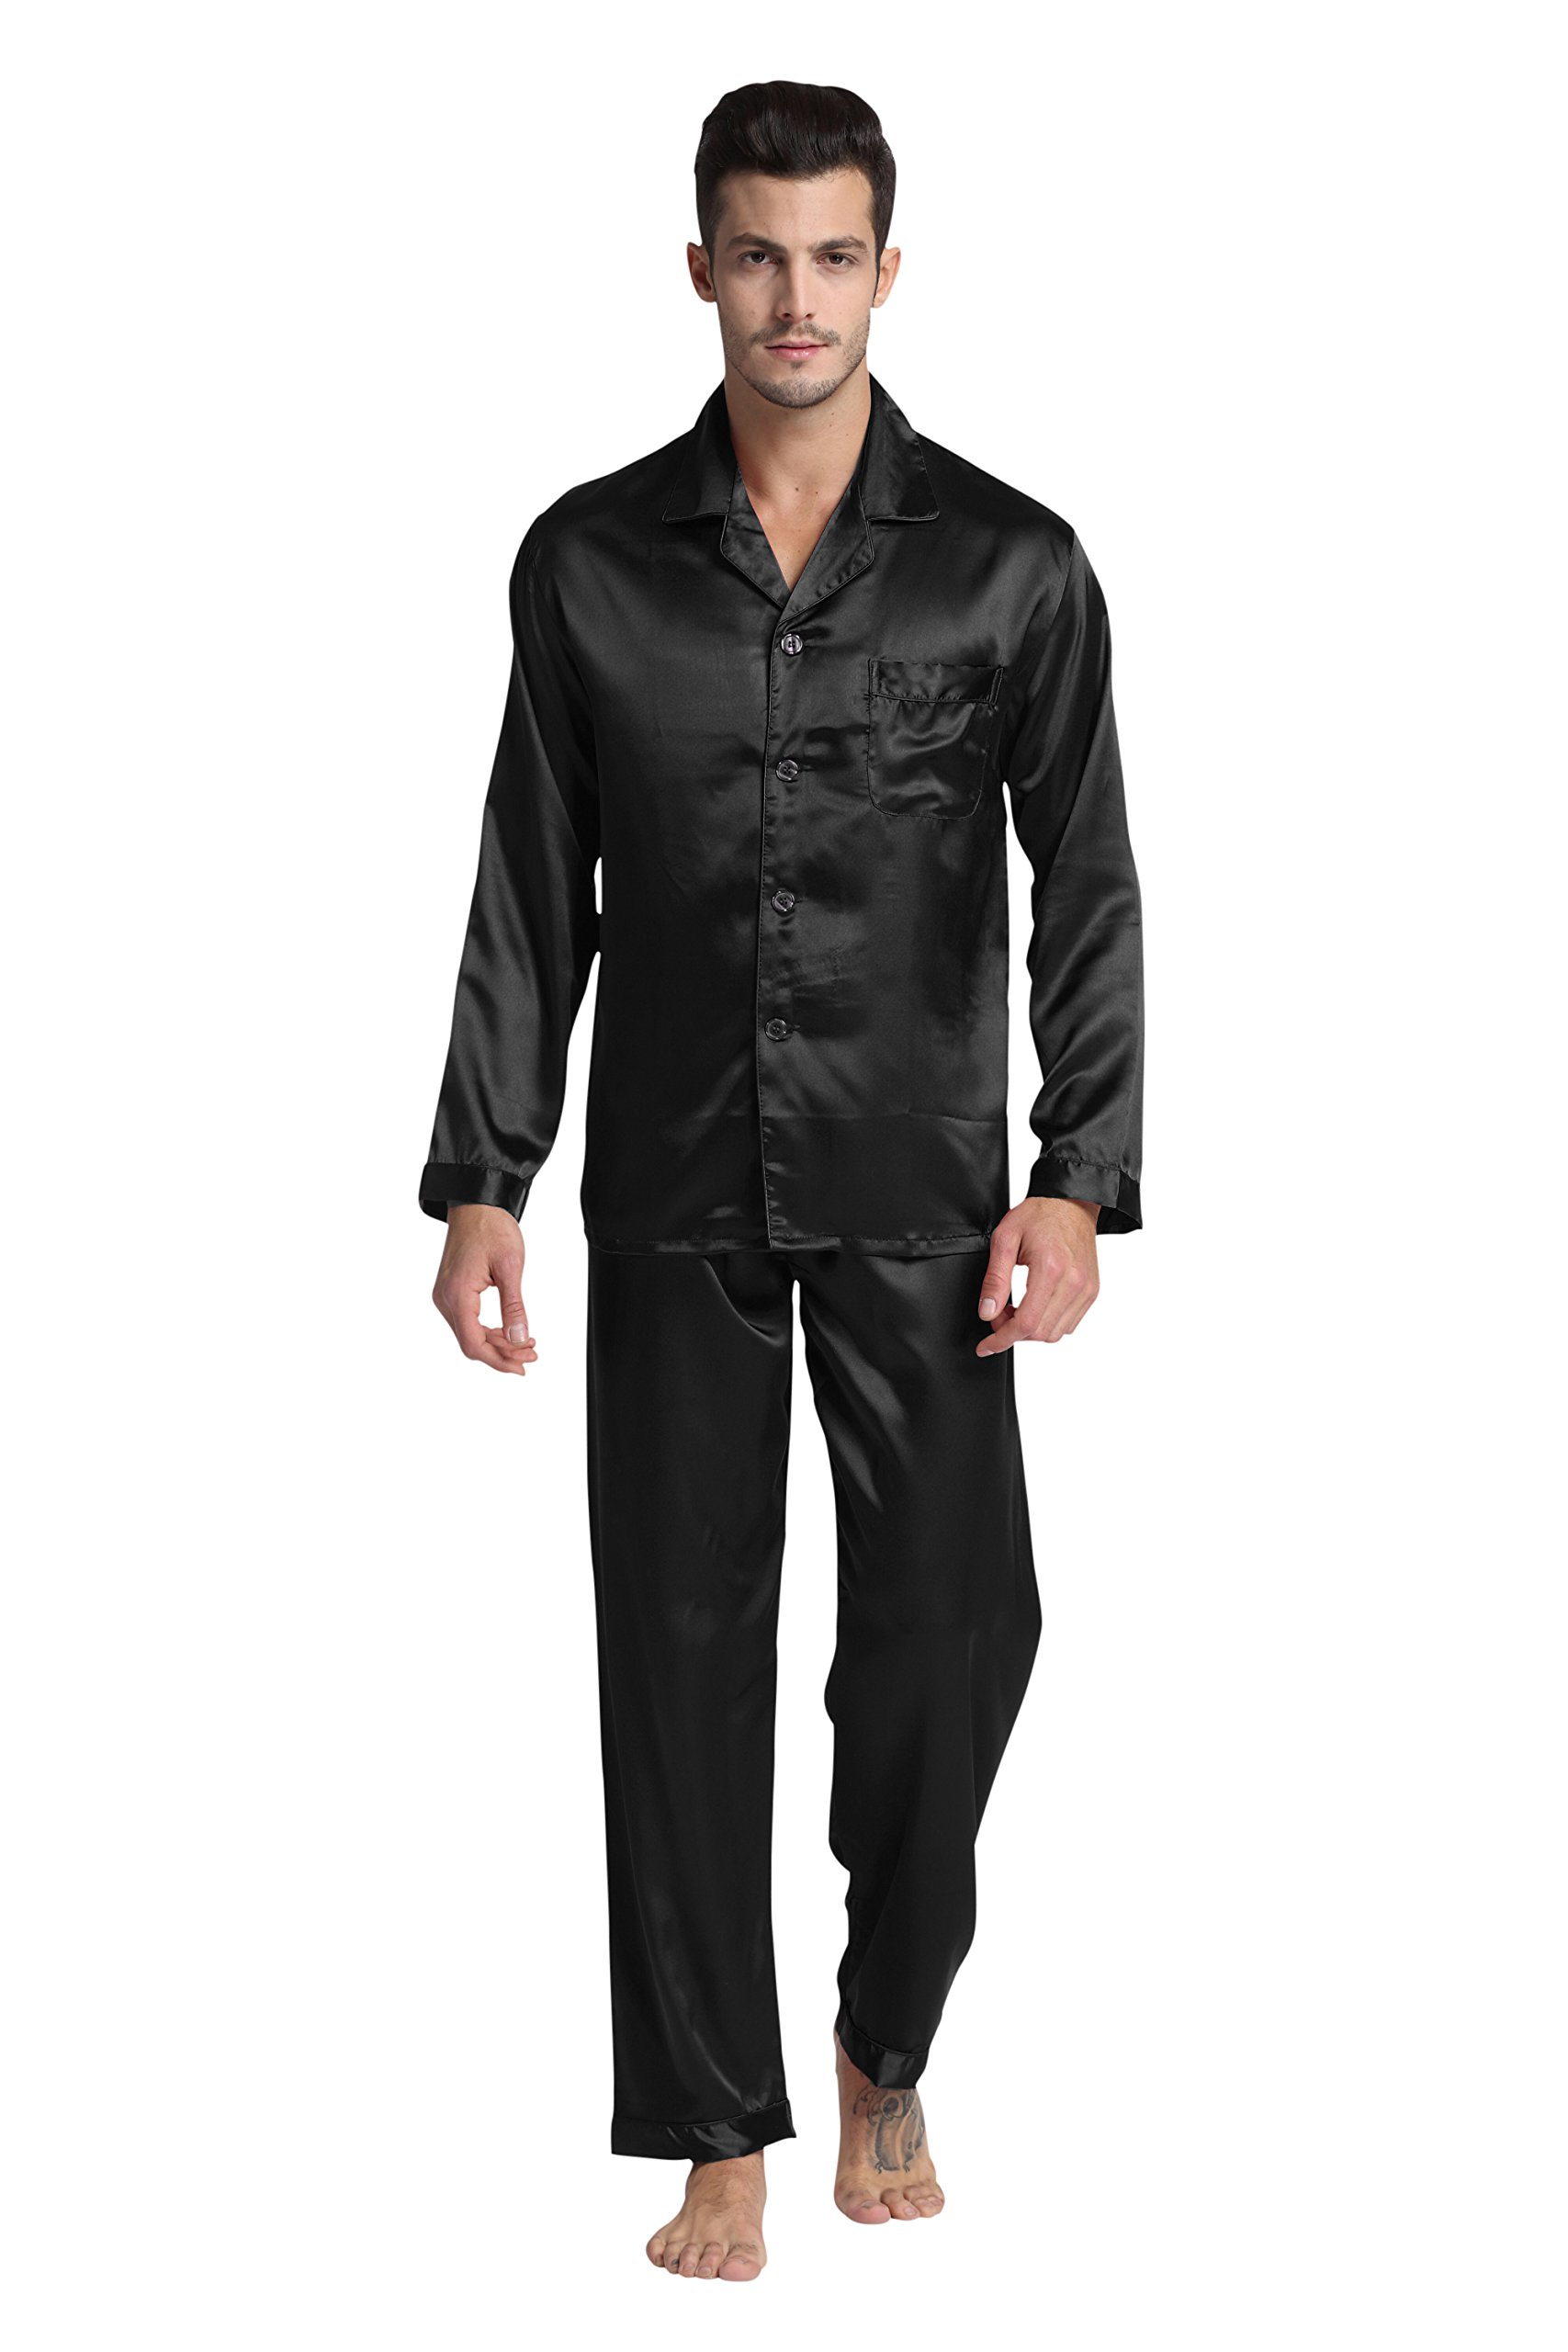 e6f9a5268ab Best Rated in Men s Sleepwear   Helpful Customer Reviews - Amazon.com